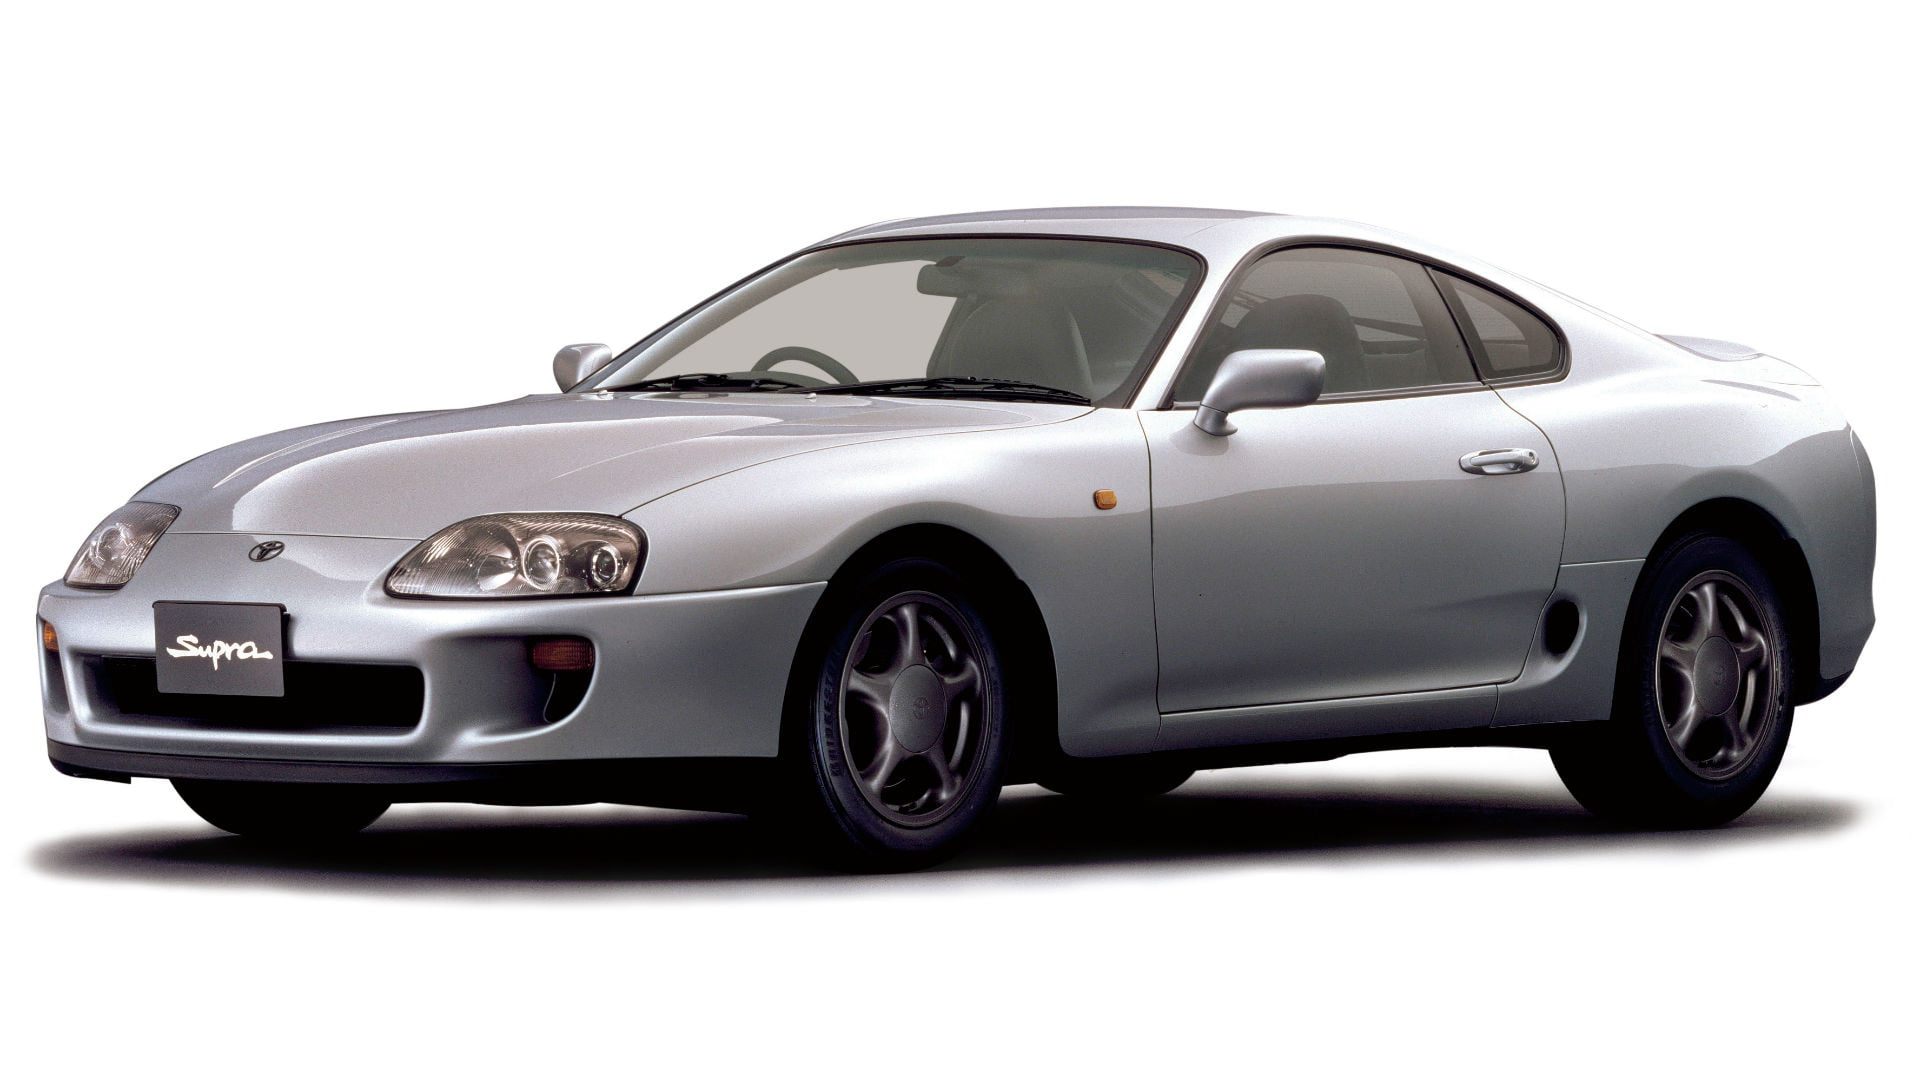 Toyota Supra spare parts project